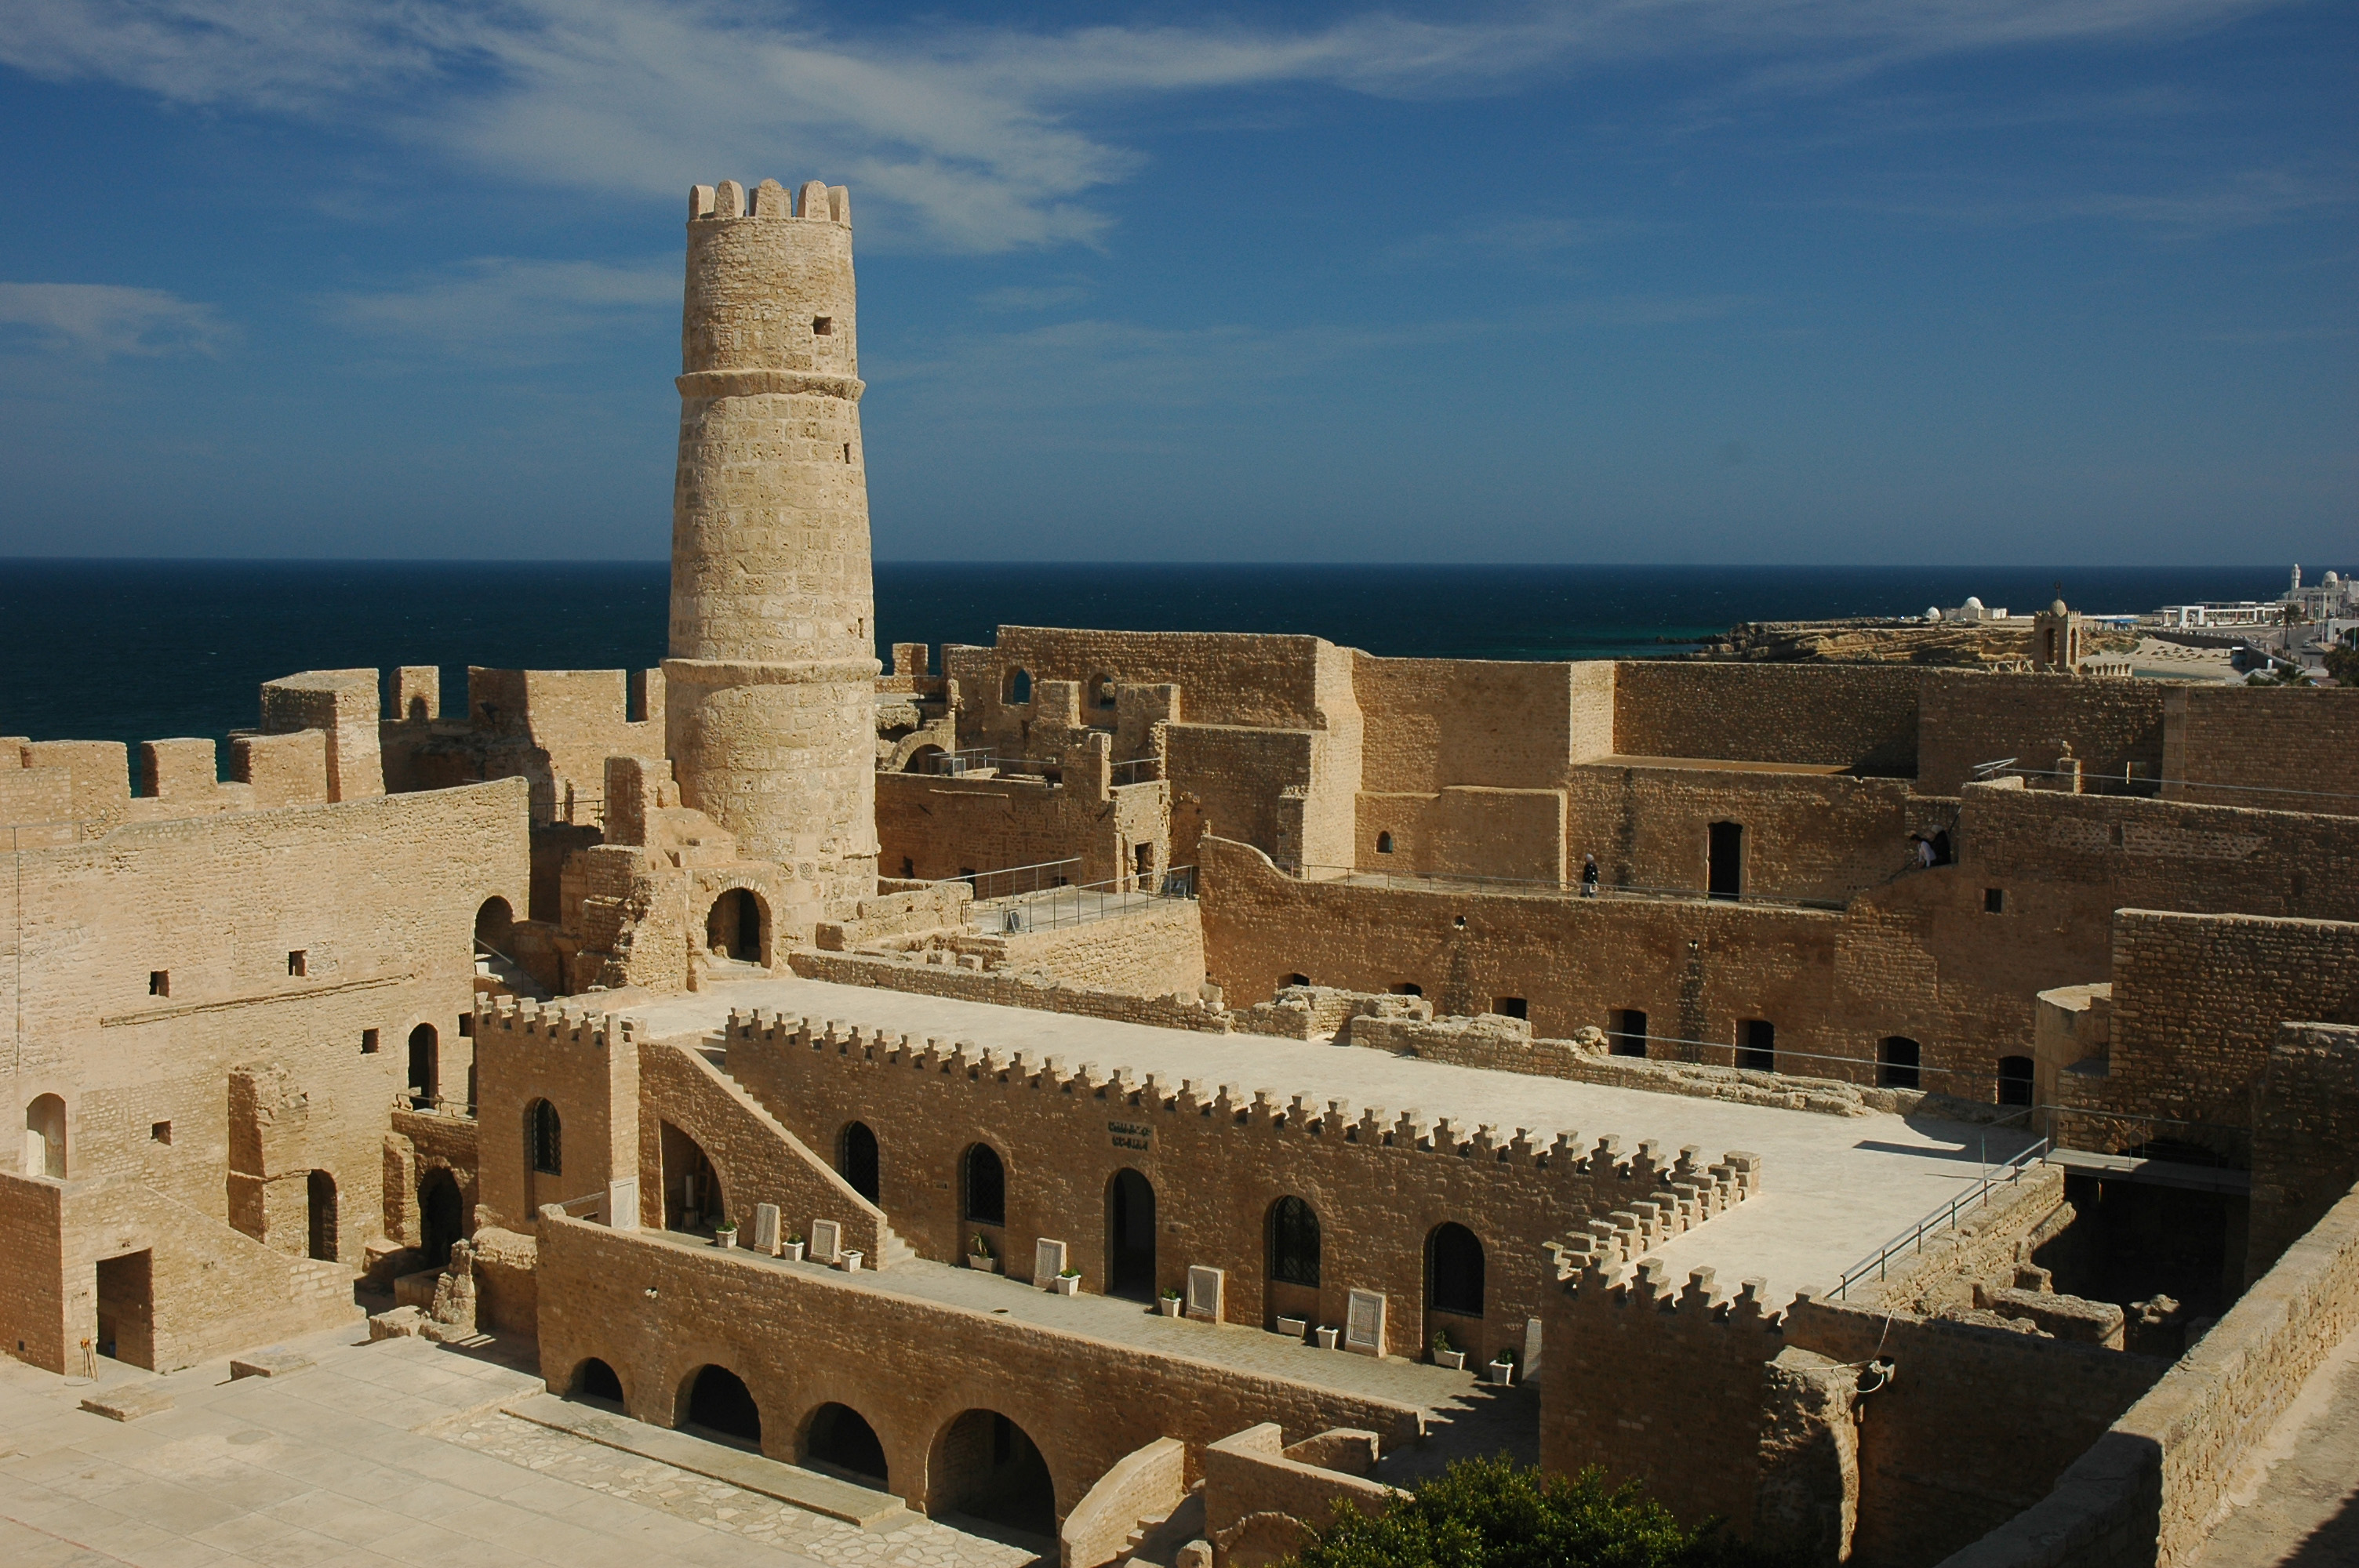 http://upload.wikimedia.org/wikipedia/commons/2/2b/TUNISIE_MONASTIR_RIBAT_04.jpg